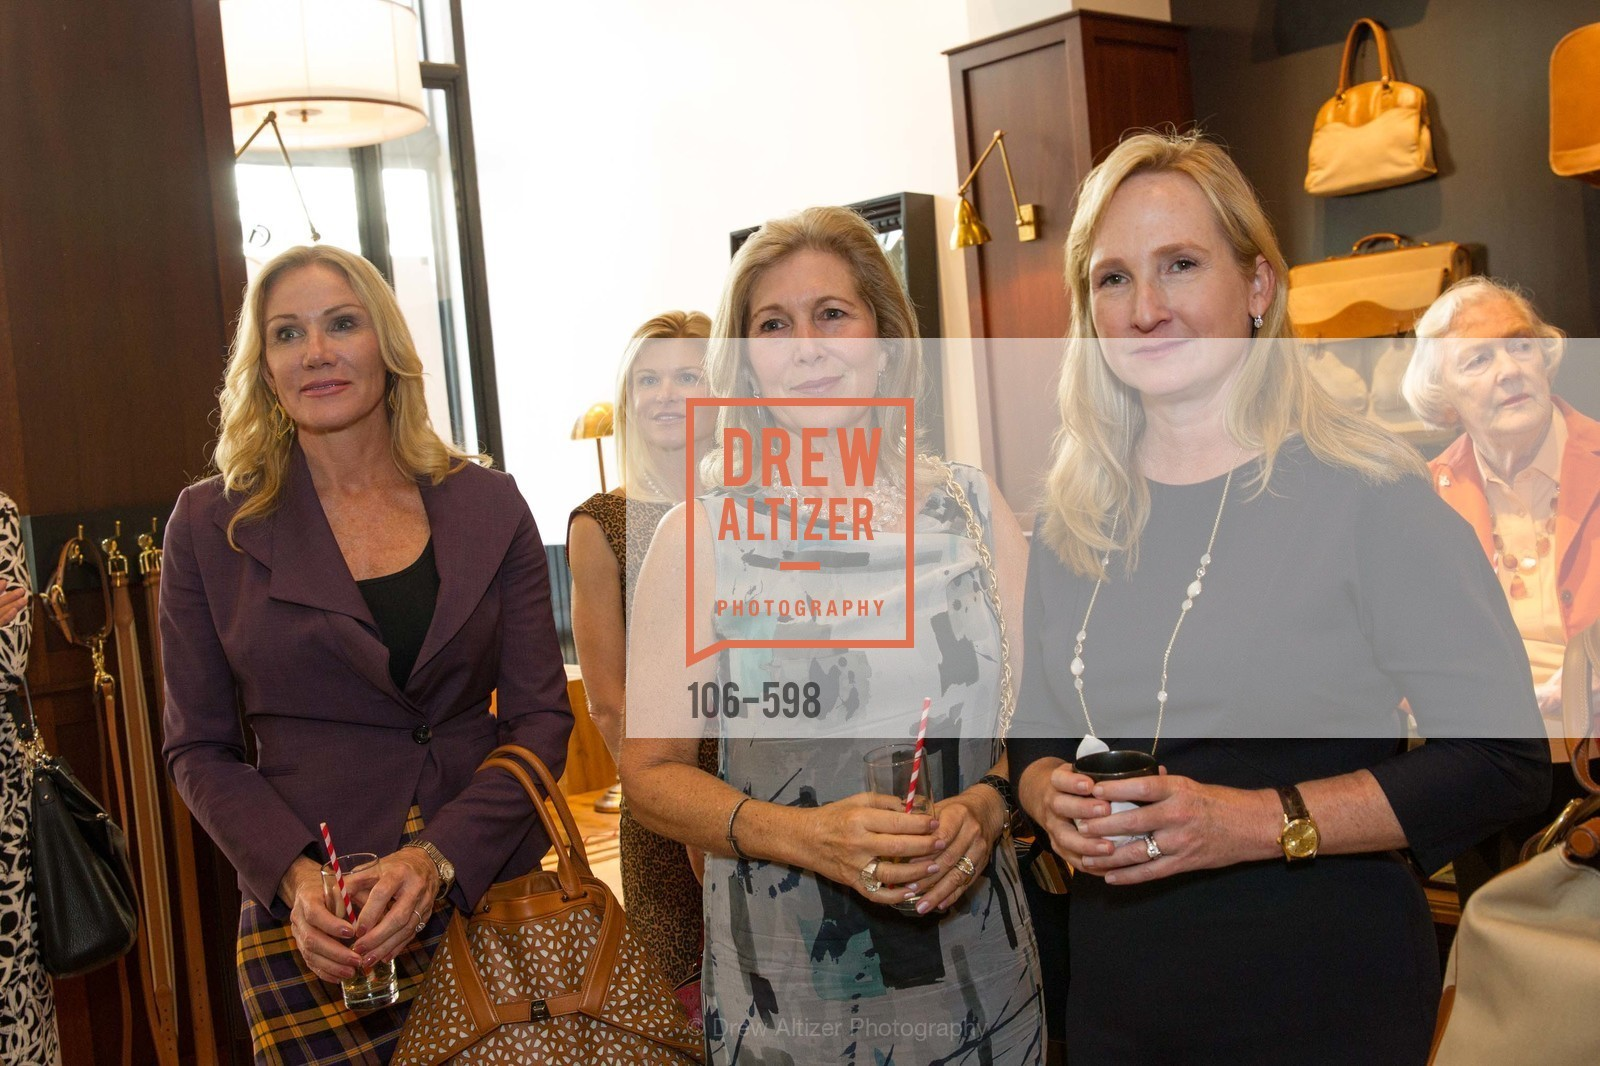 Rosemary Baker, Janie Friend, Anne Pedrero, GHURKA FALL FASHION Press Preview Honoring the ZOO BOARD, US, October 7th, 2014,Drew Altizer, Drew Altizer Photography, full-service agency, private events, San Francisco photographer, photographer california